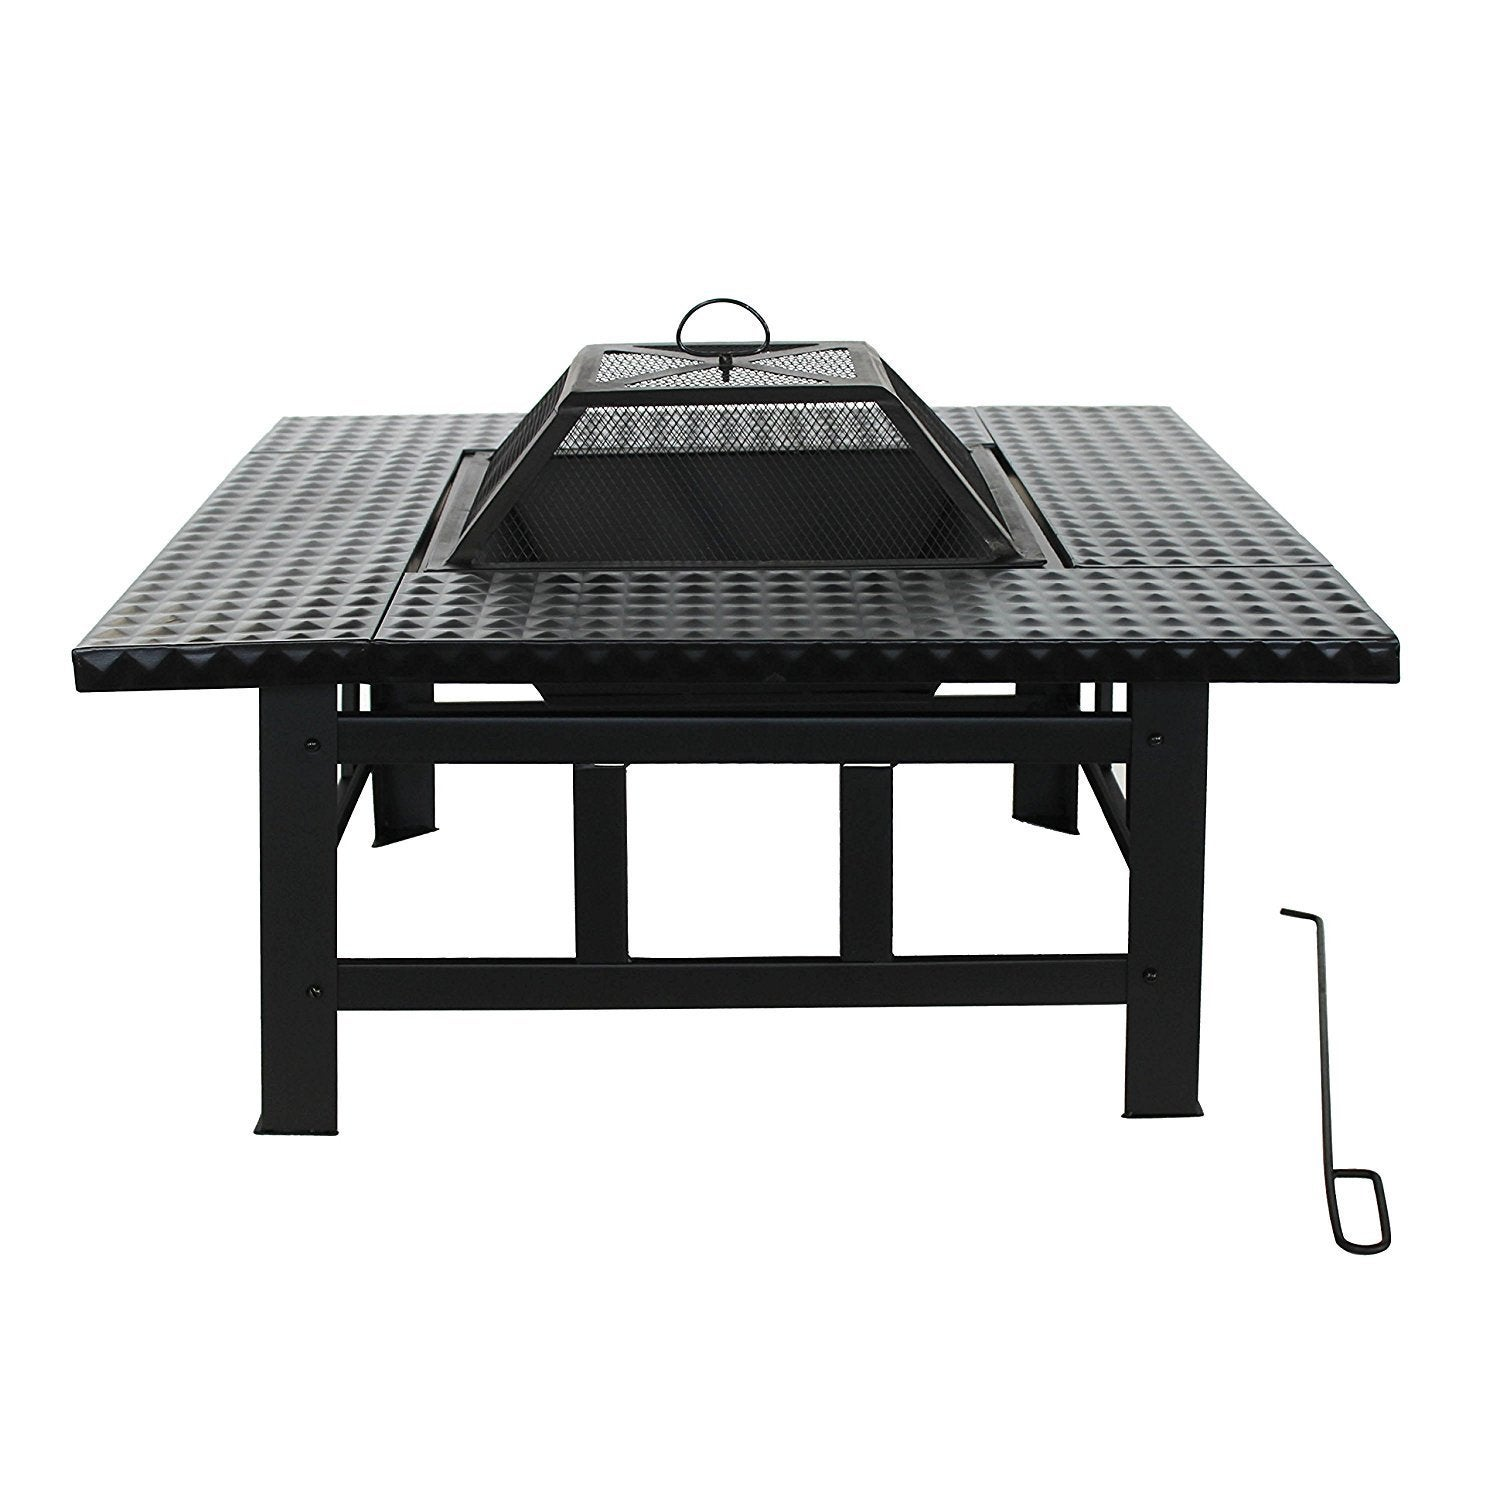 Incroyable ALEKO Steel Table Top Black Fire Pit Kit With Lid And Poker